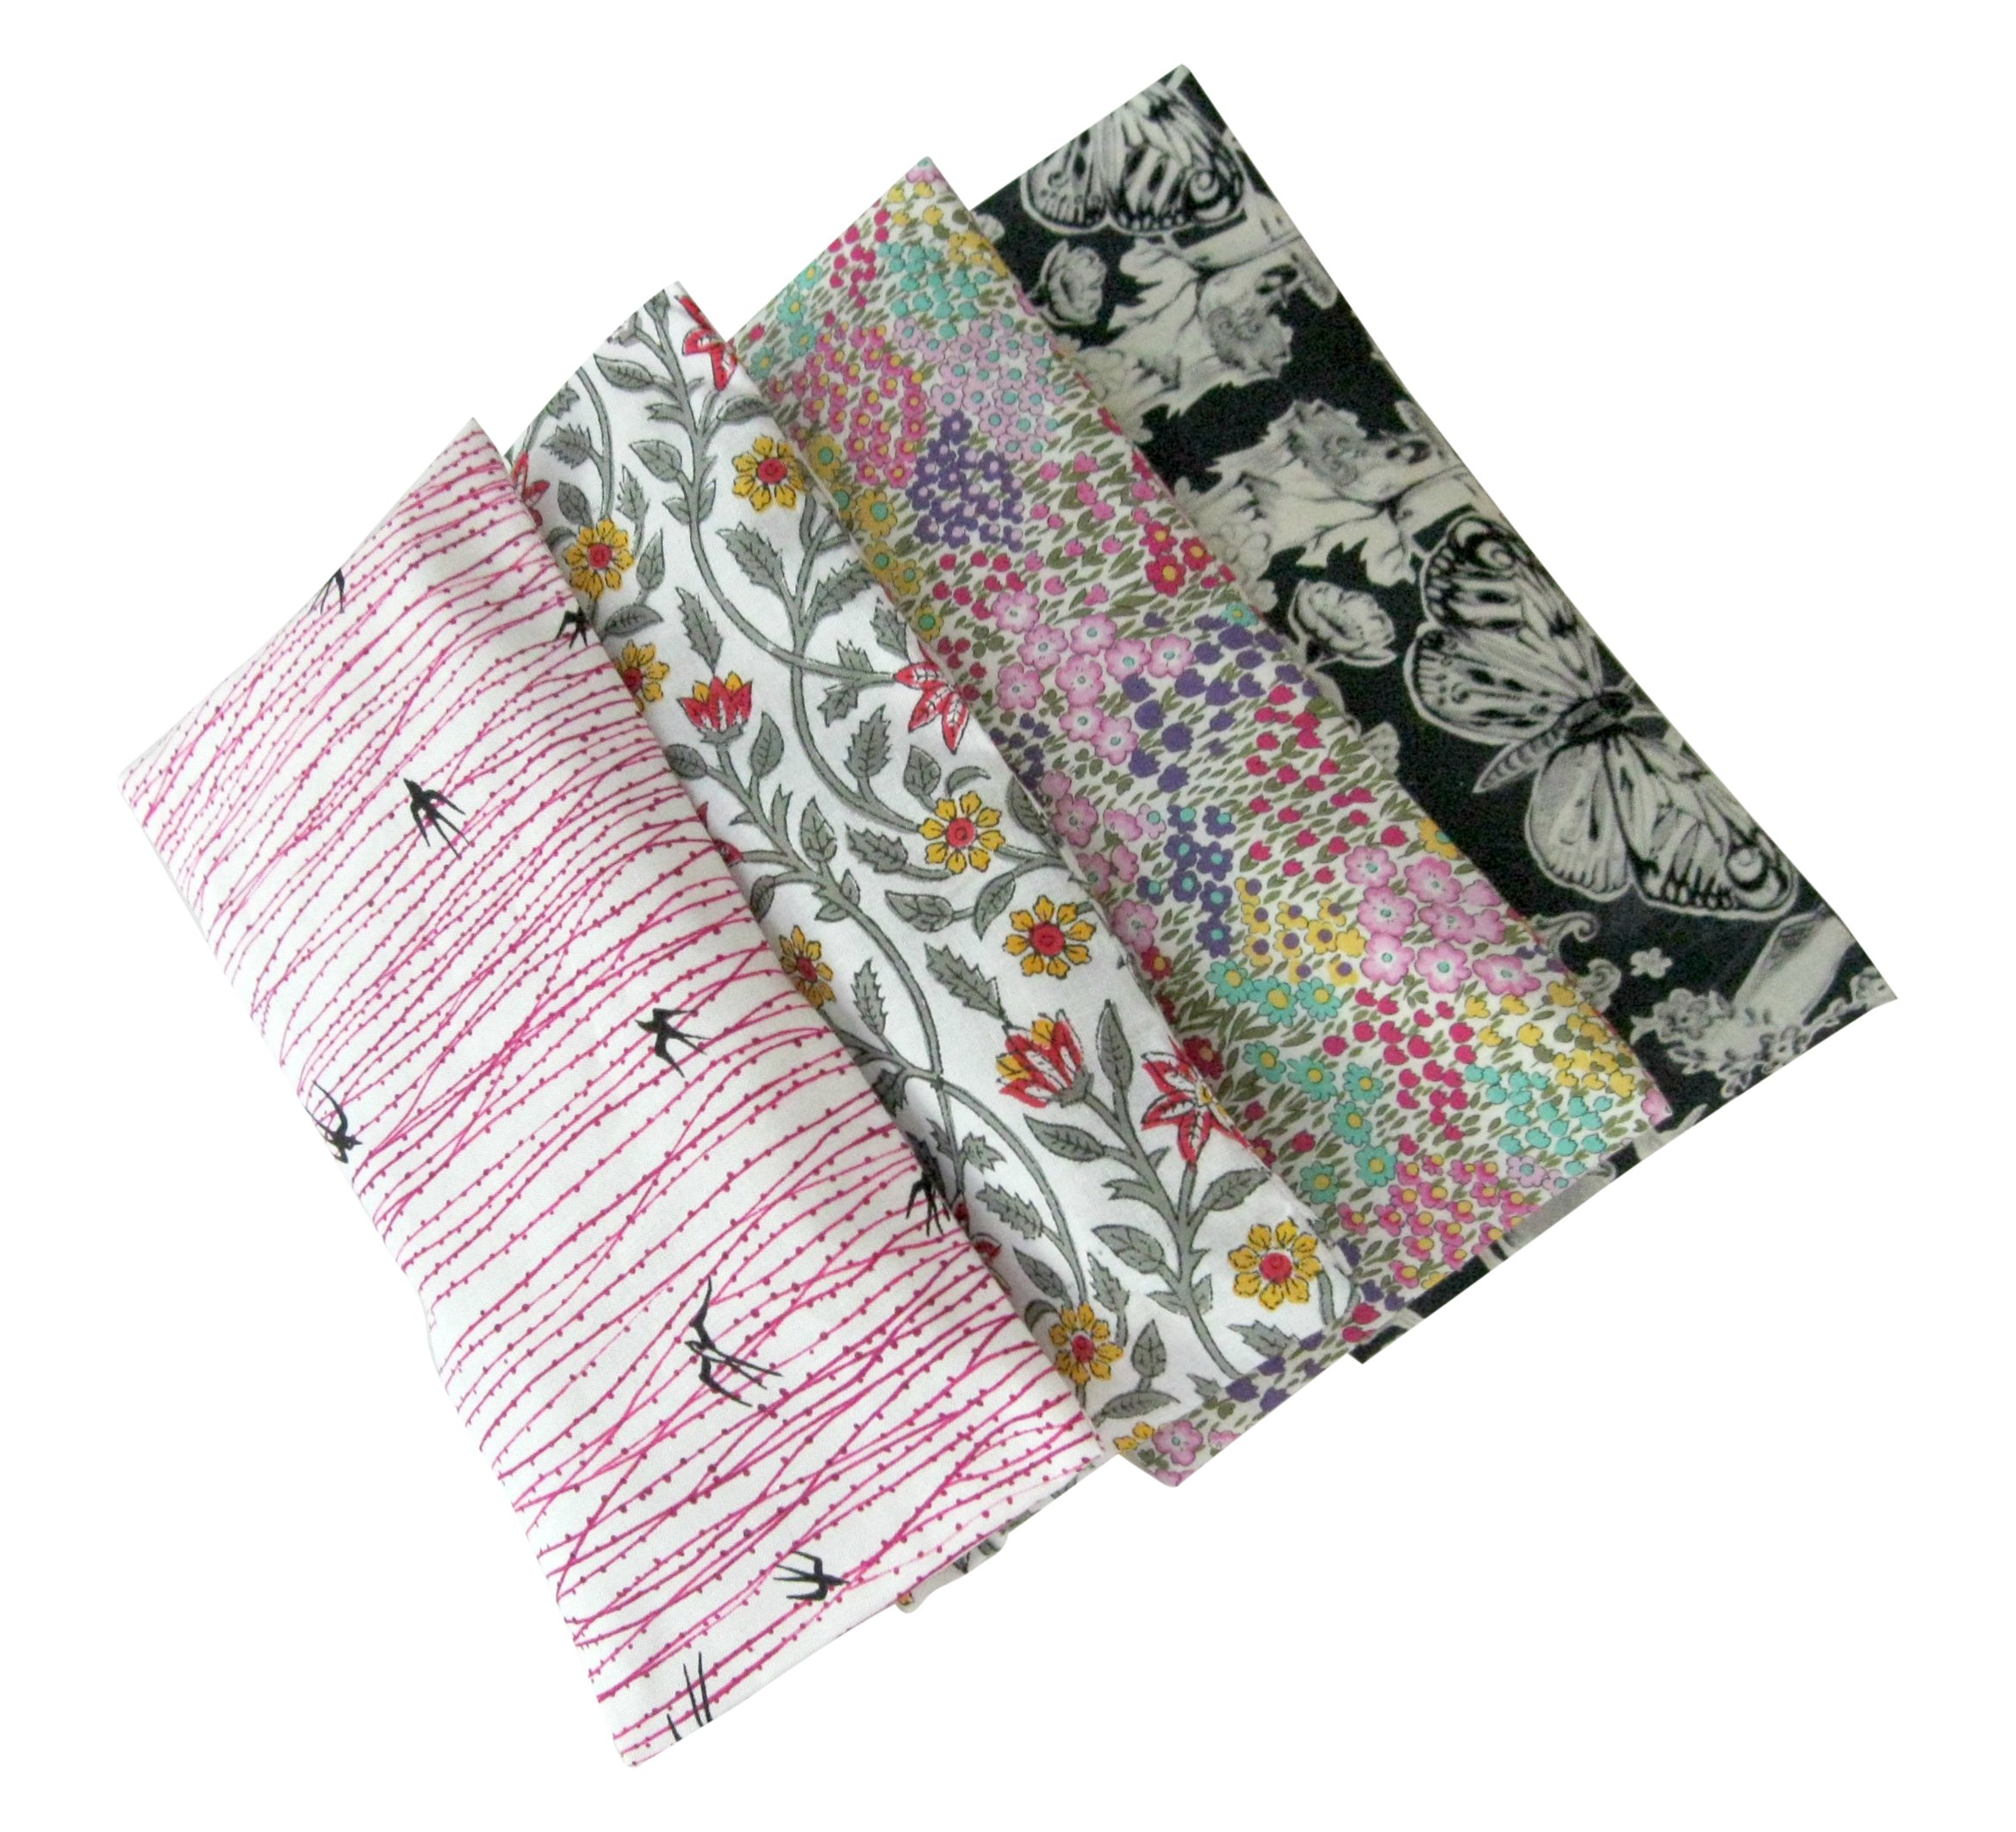 Aromatherapy Eye Pillow - Bundle of (4) - 4.5 x 9 - Organic Lavender Chamomile Flax Cotton - Removable Cover Washable - pink gray black birds flowers by Peacegoods (Image #3)